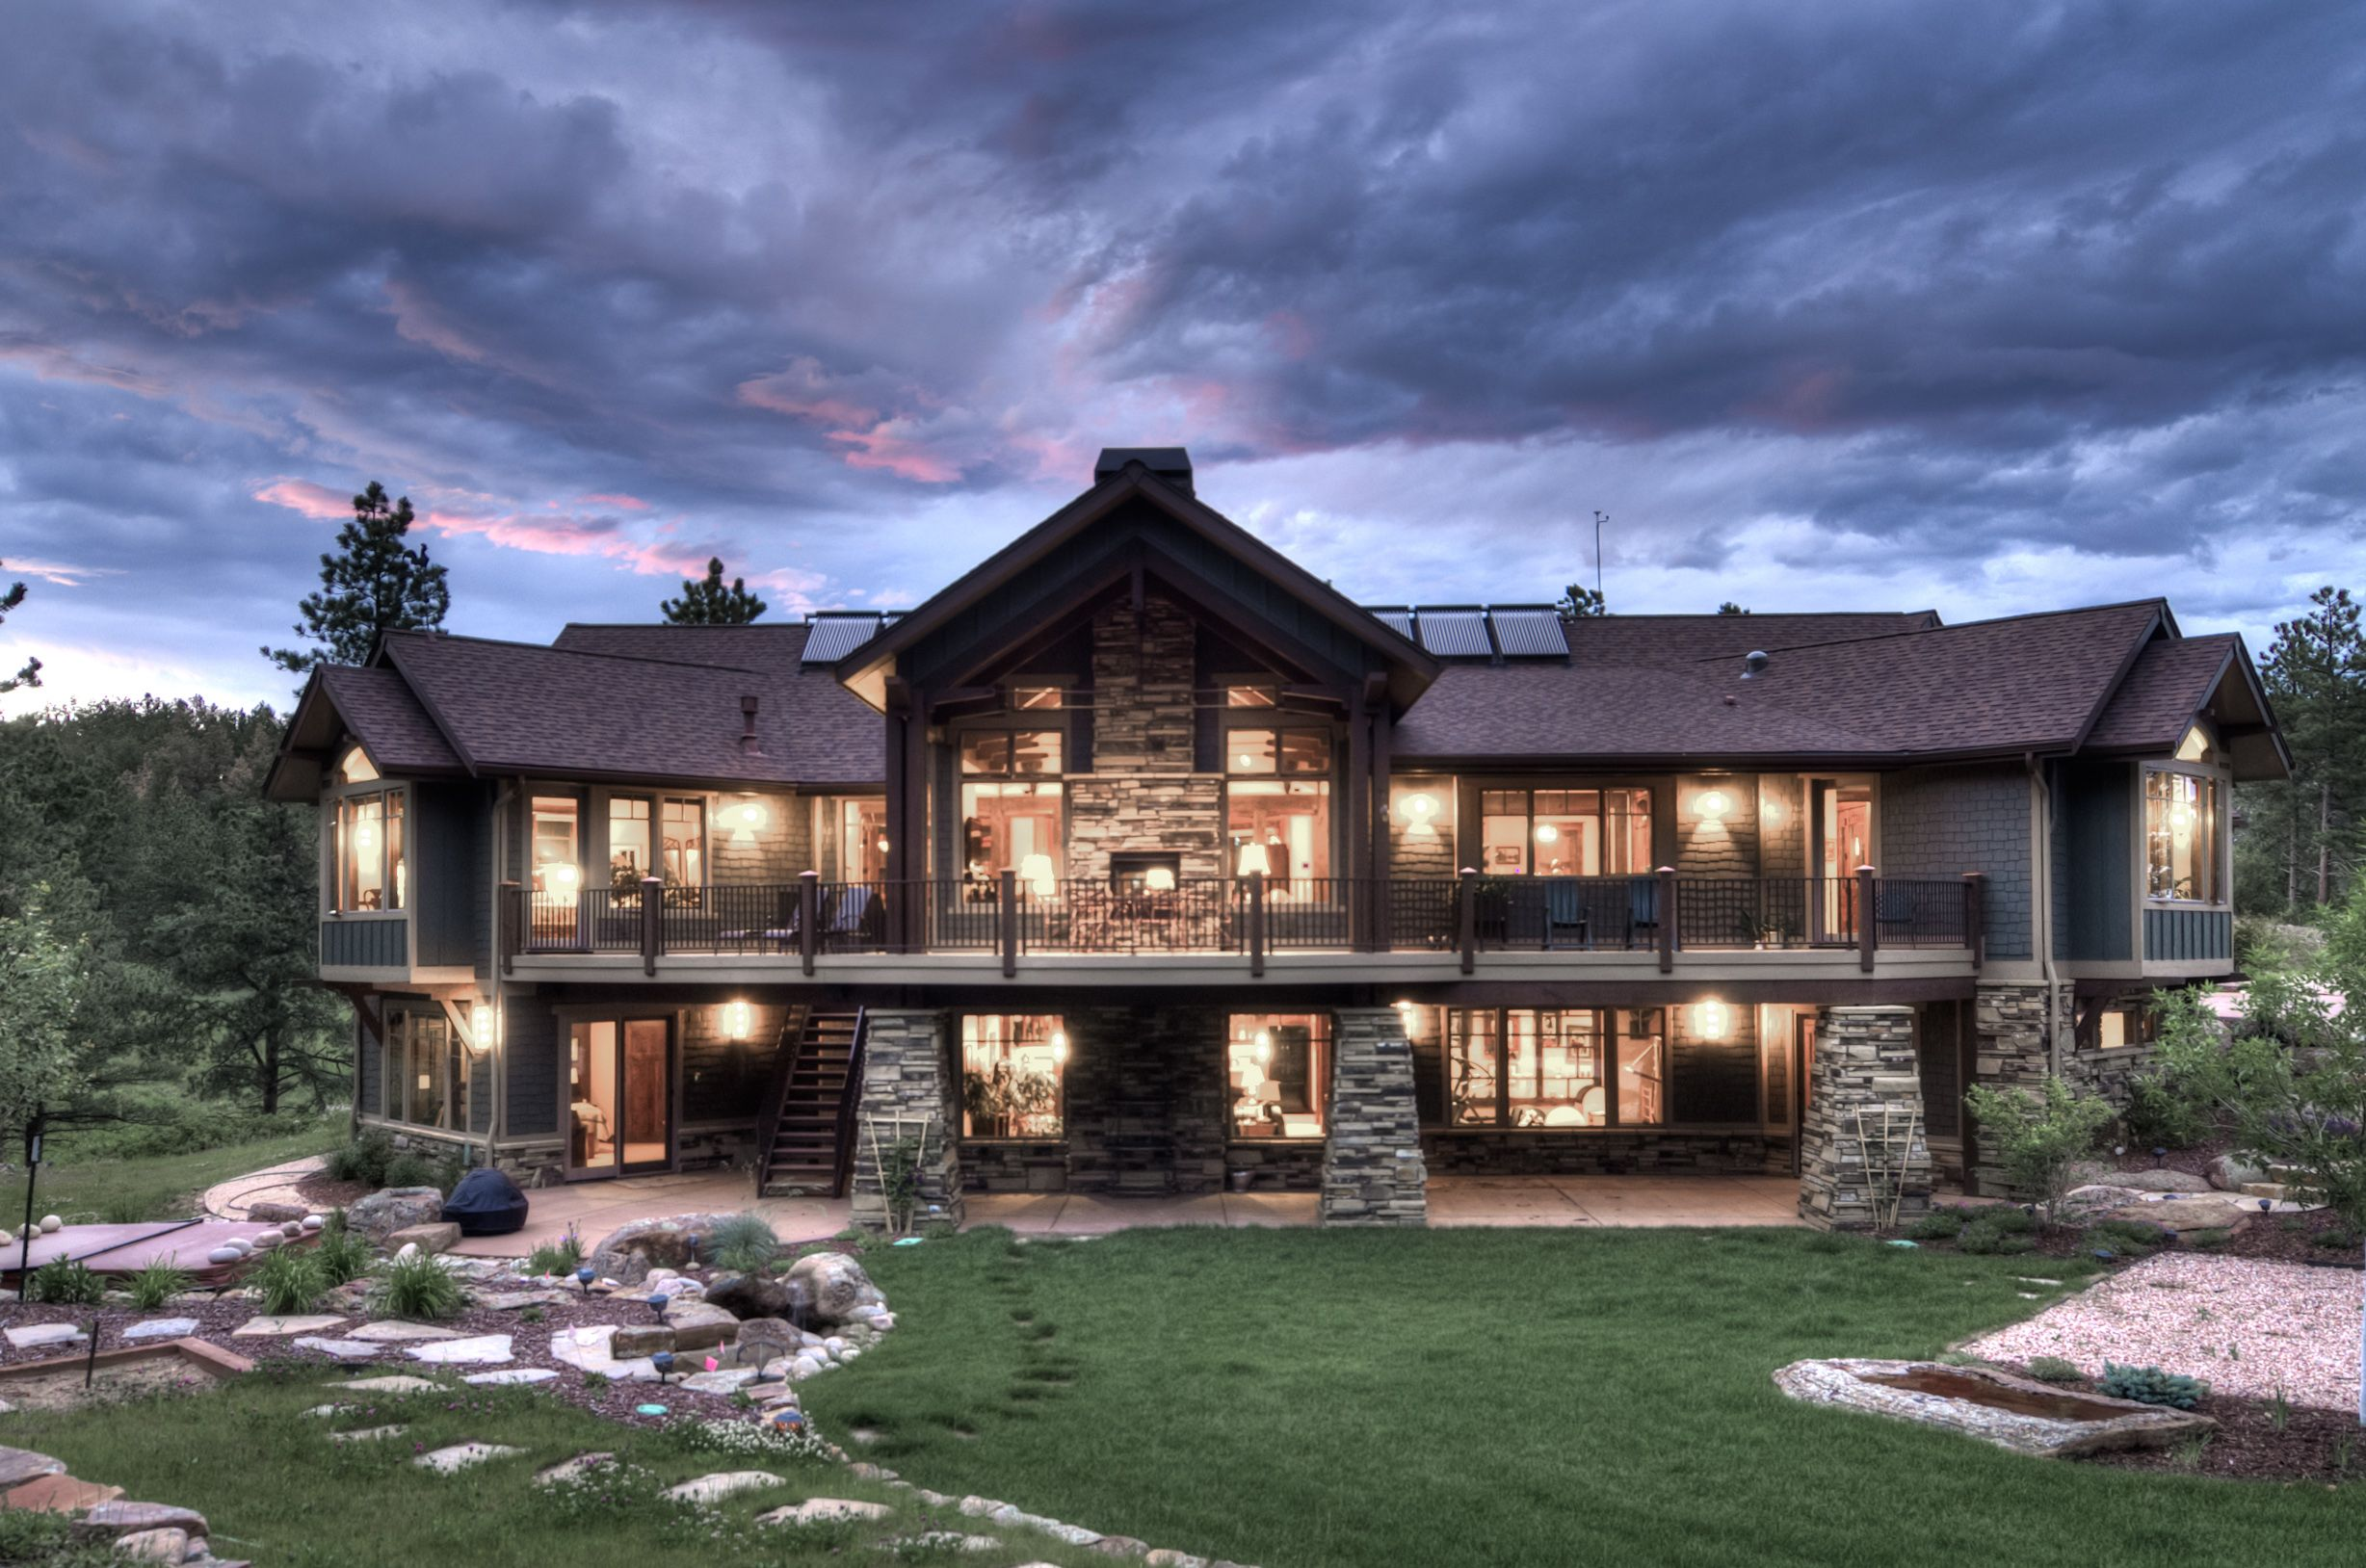 mountain craftsman style house plans breathtaking exterior view mountain craftsman style house plans breathtaking exterior view of the mountain craftsman style home